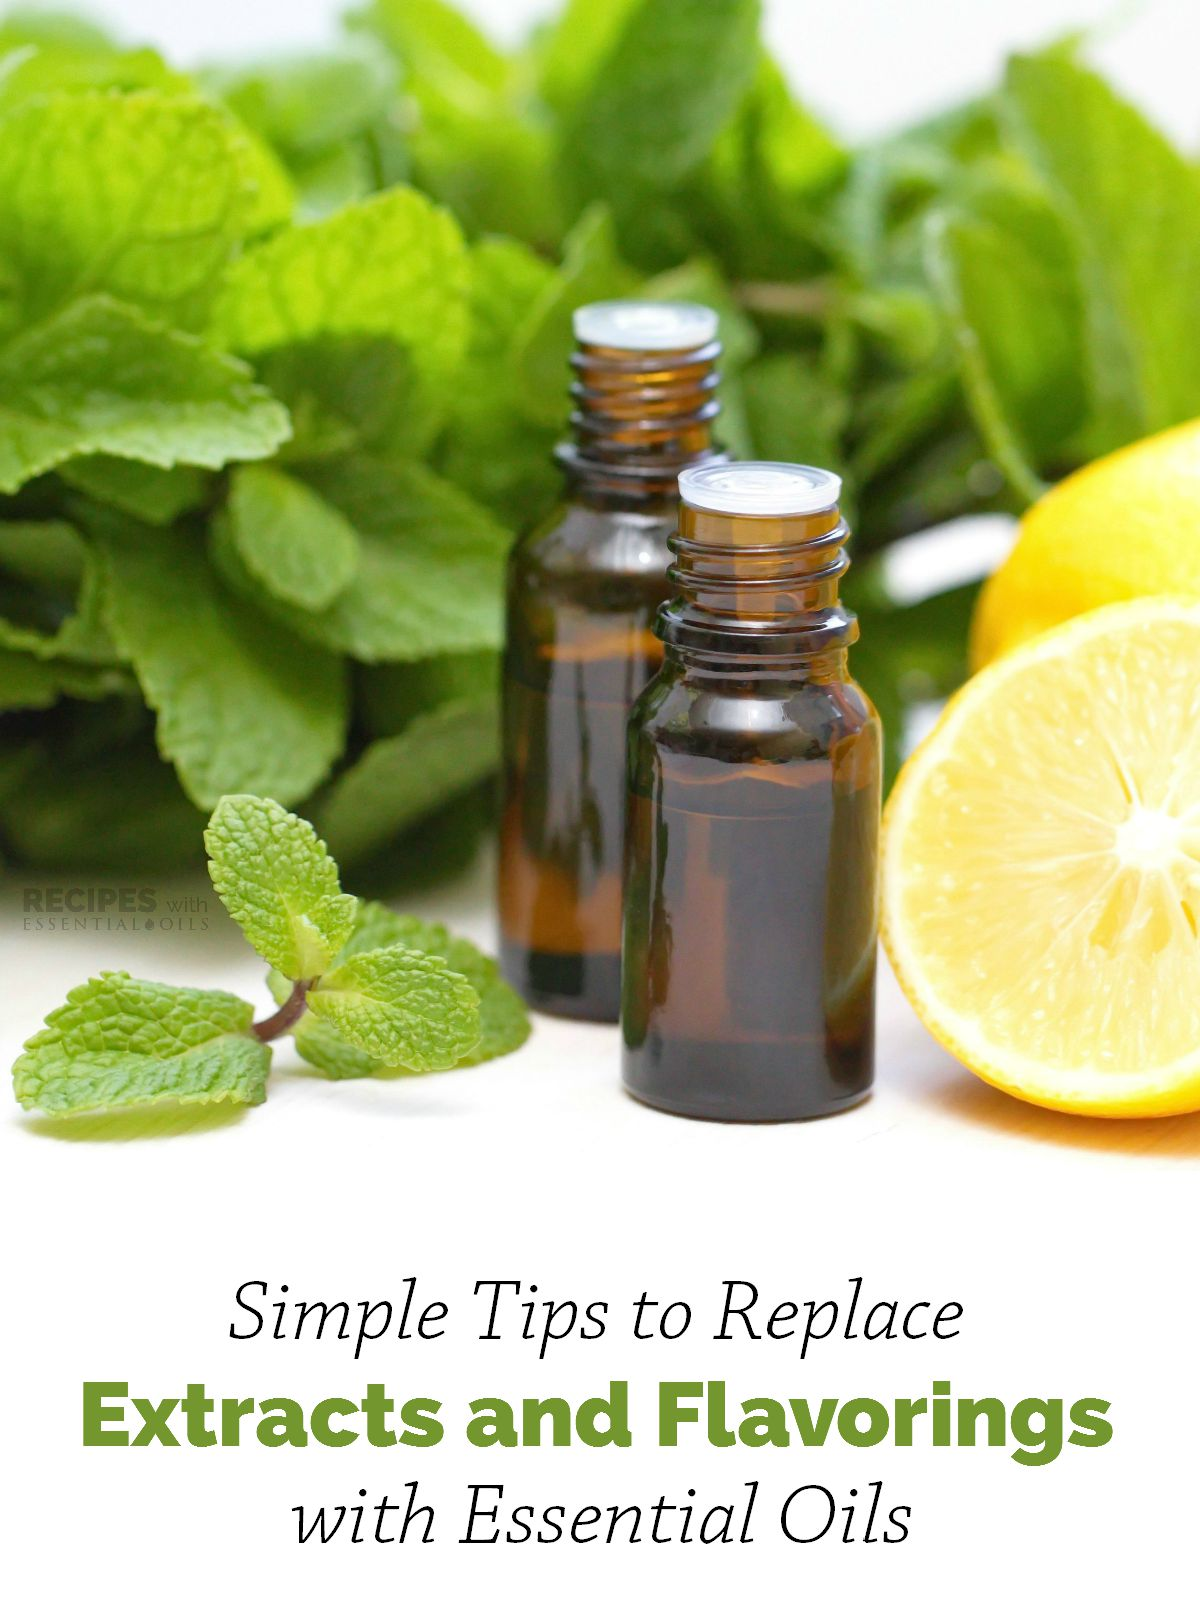 How do you replace extracts and flavorings with essential oils simple tips to replace extracts and flavorings with essential oils recipeswithessentialoils forumfinder Gallery